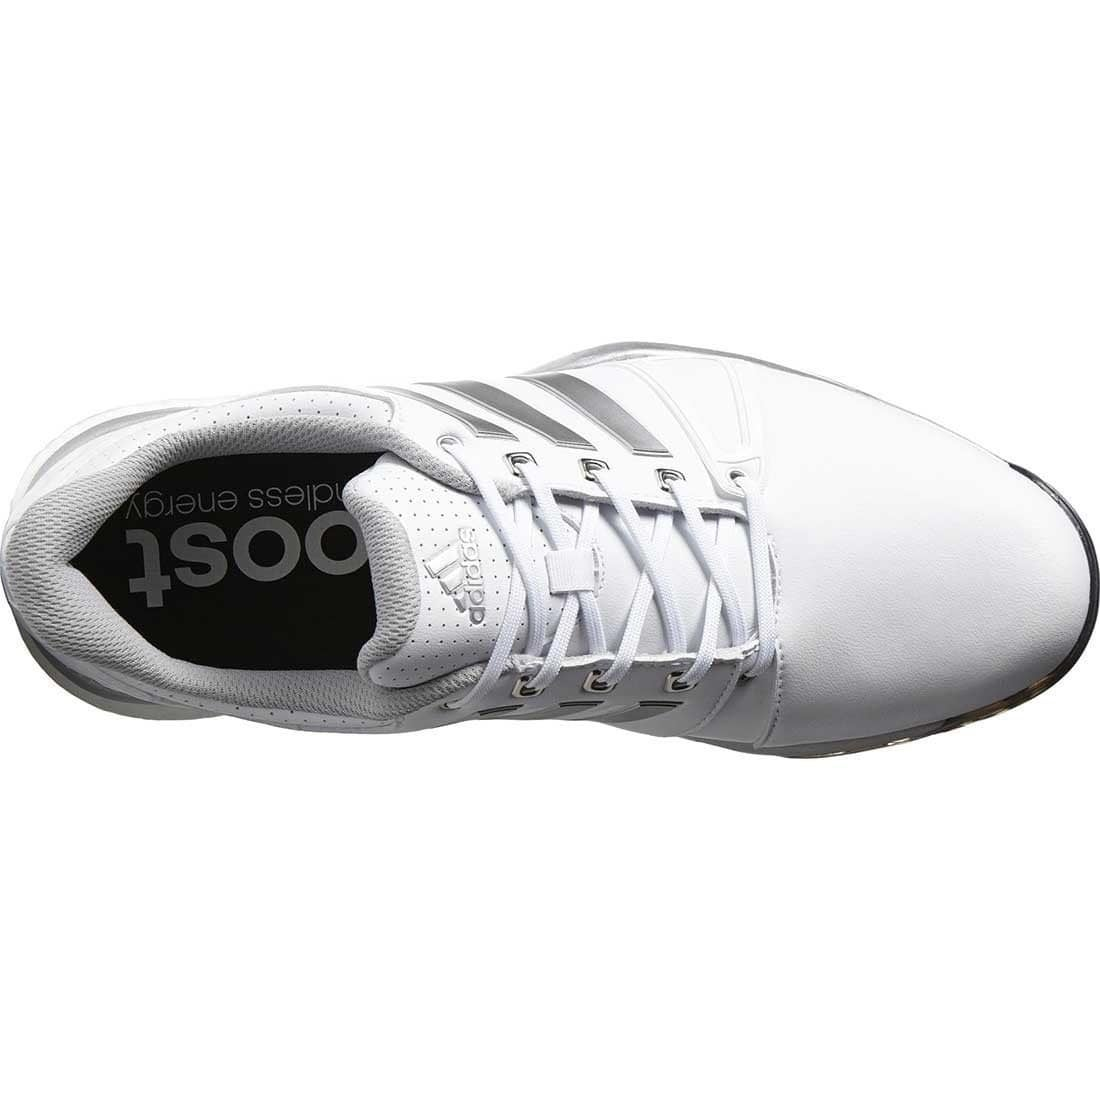 Shop Adidas Men s Adipower Boost 2 White Silver Metallic Core Black Golf  Shoes Q44659   F33366 - Free Shipping Today - Overstock - 18272307 e04875fc3